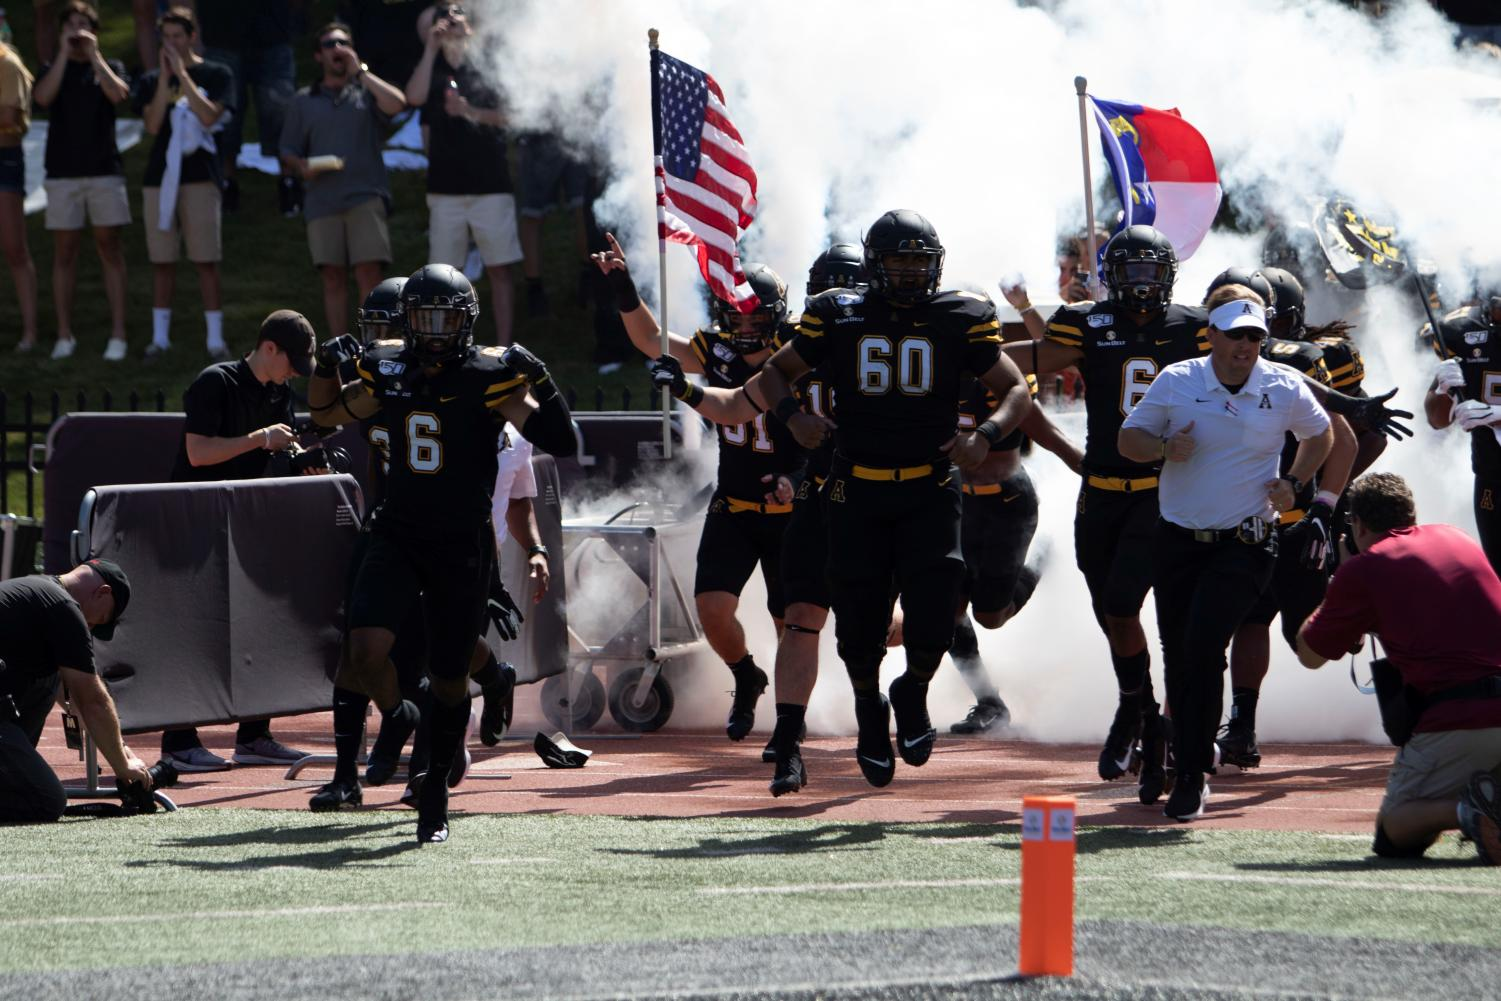 Senior captain & safety Desmond Franklin (left) takes the field alongside junior offensive lineman Noah Hannon (center) and head coach Eliah Drinkwitz (right) before App State's 42-7 victory over East Tennessee State on Aug. 31. // Photo courtesy of App State Athletics